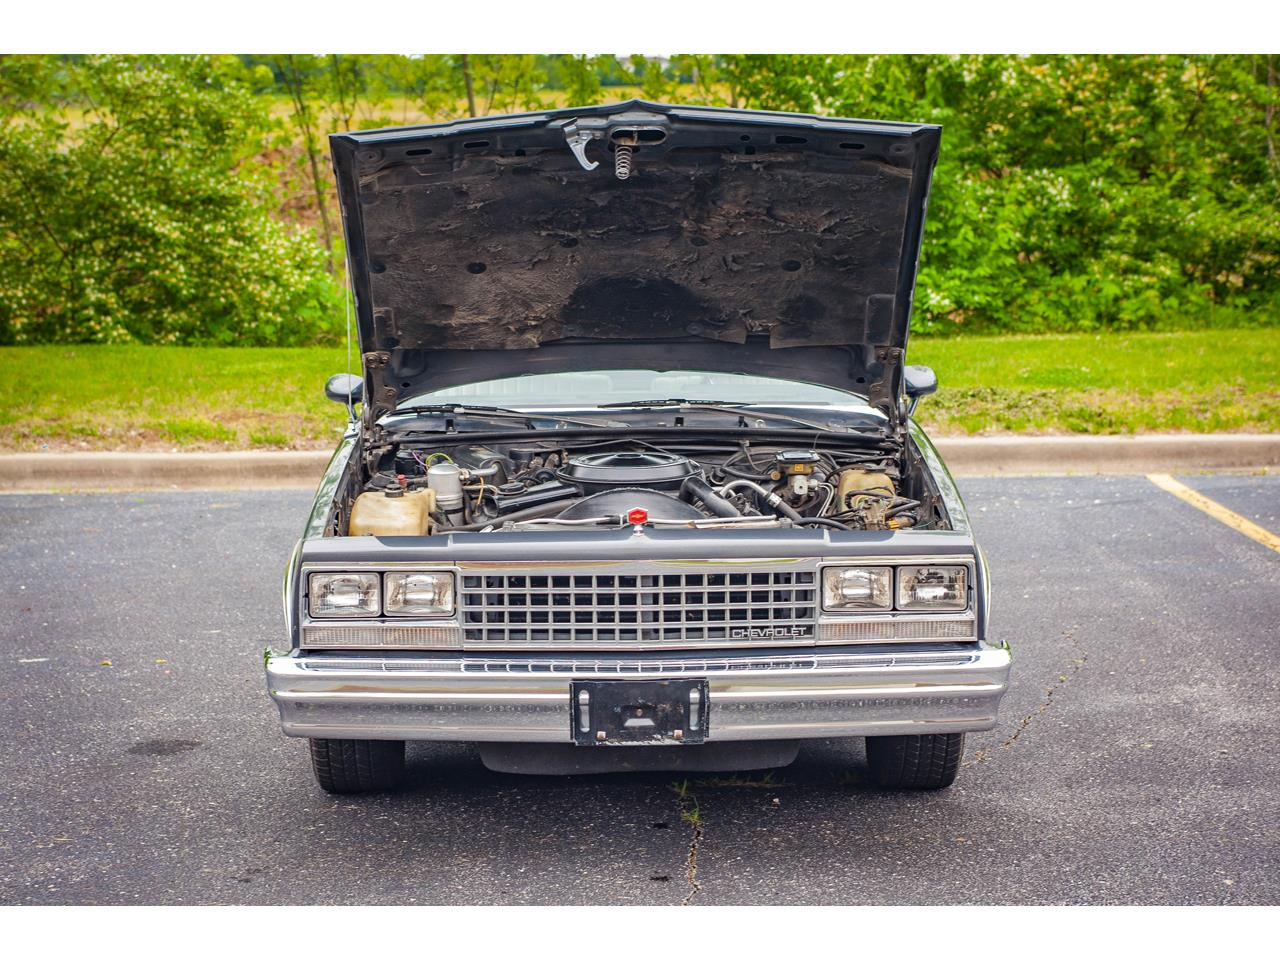 Large Picture of '82 Chevrolet El Camino - $13,000.00 Offered by Gateway Classic Cars - St. Louis - QB9A